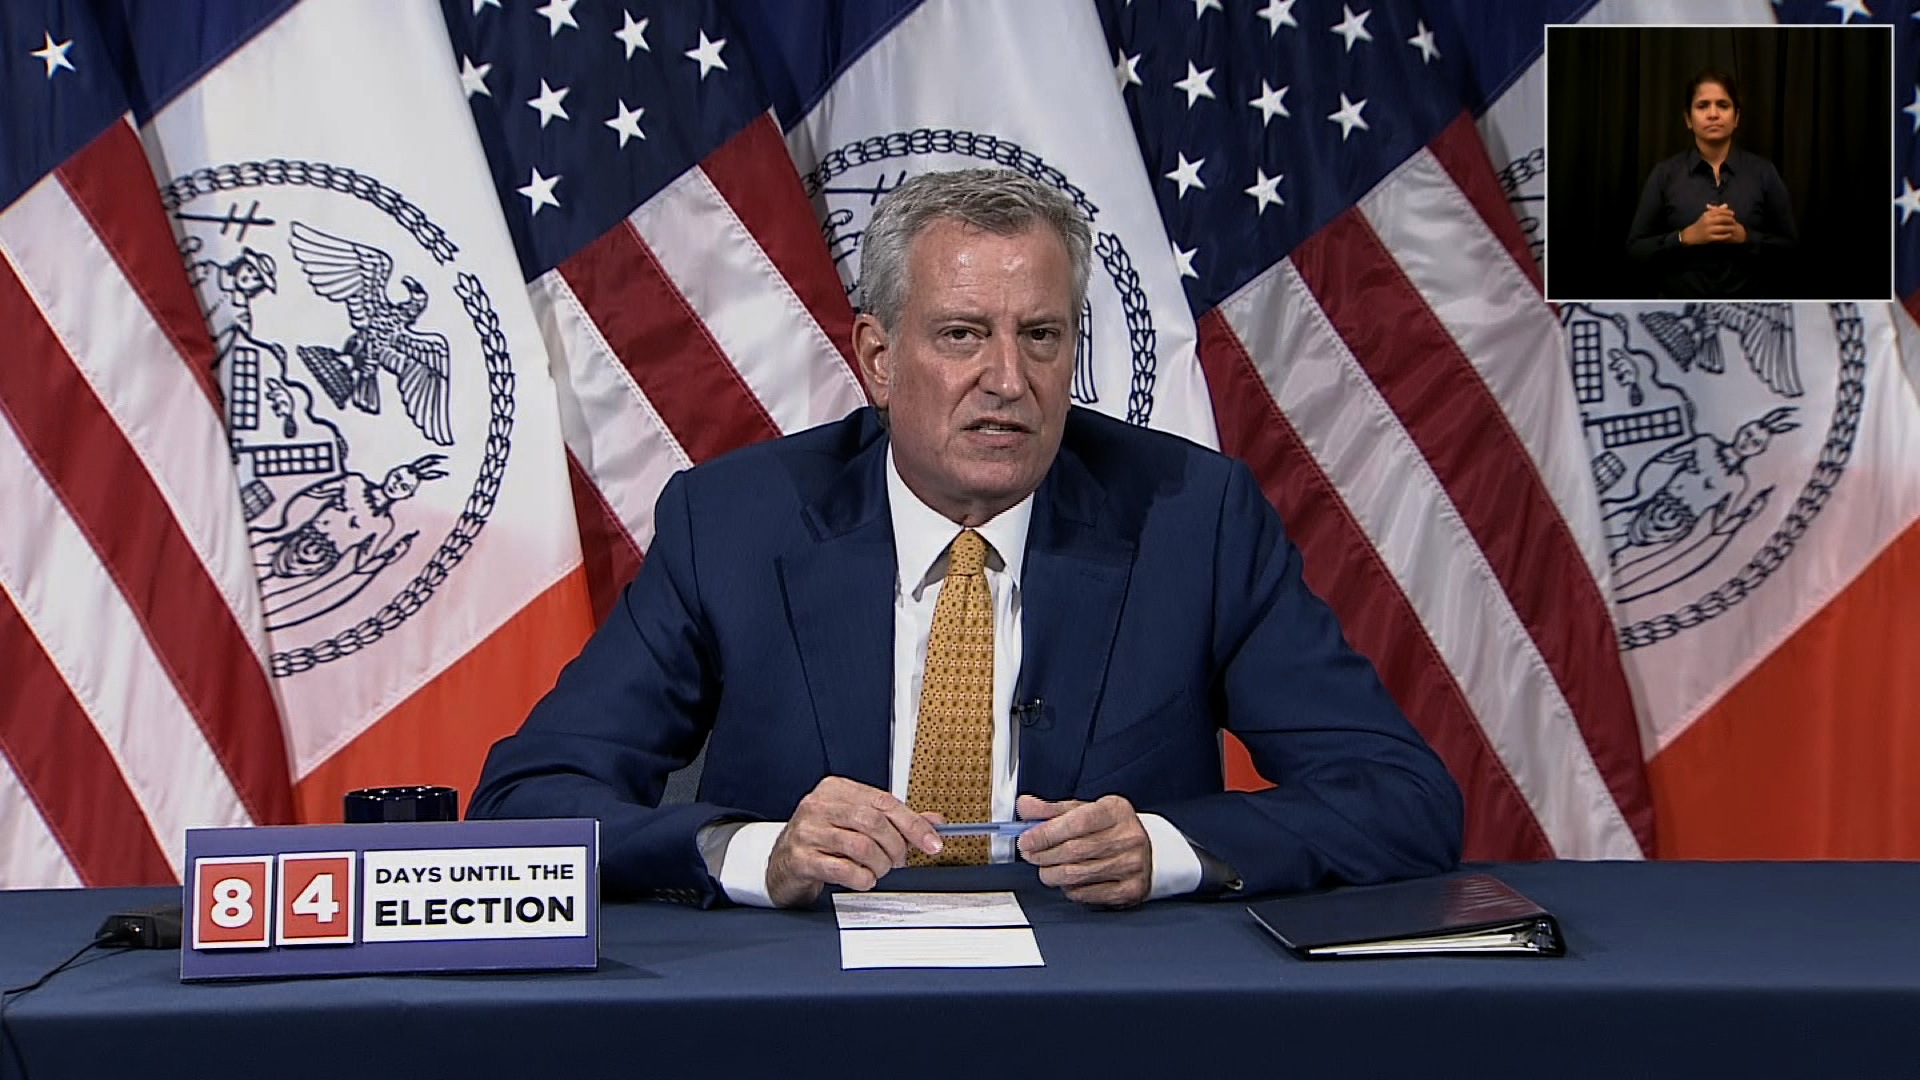 New York City Mayor Bill de Blasio speaks during a press conference in New York City on August 11.